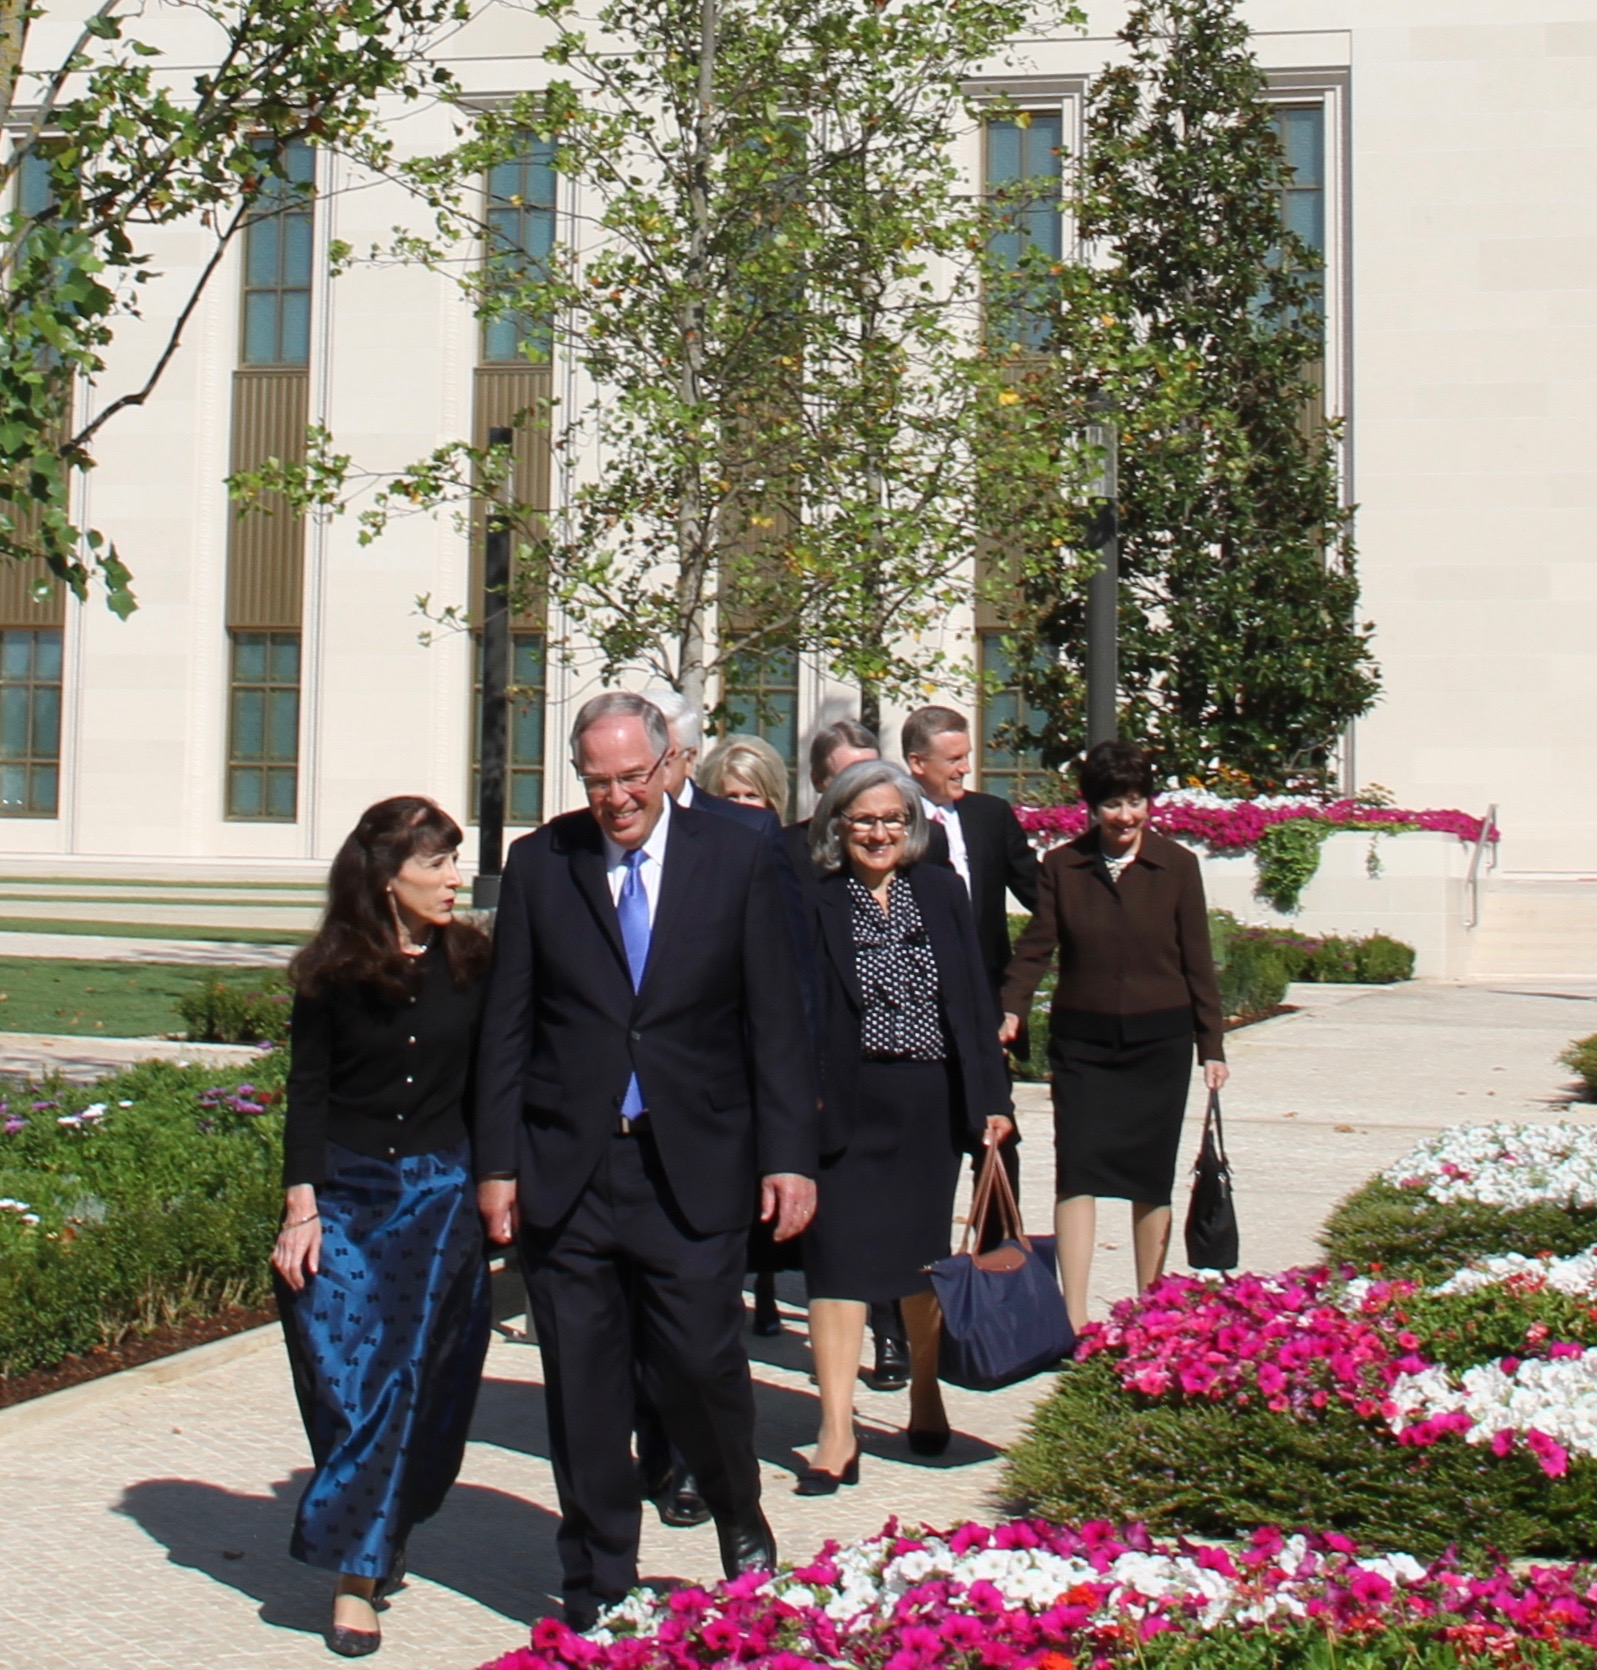 Elder Neil L. Andersen and Sister Kathy Andersen lead out in the courtyard following a walk-through of the Lisbon Portugal Temple on Saturday, Sept. 14, 2019. They are joined by Elder José A. Teixeira, Sister Filomena Teixeira, Elder Gary B. Sabin, Sister Valerie Sabin, Elder Kevin R. Duncan and Sister Nancy Duncan.